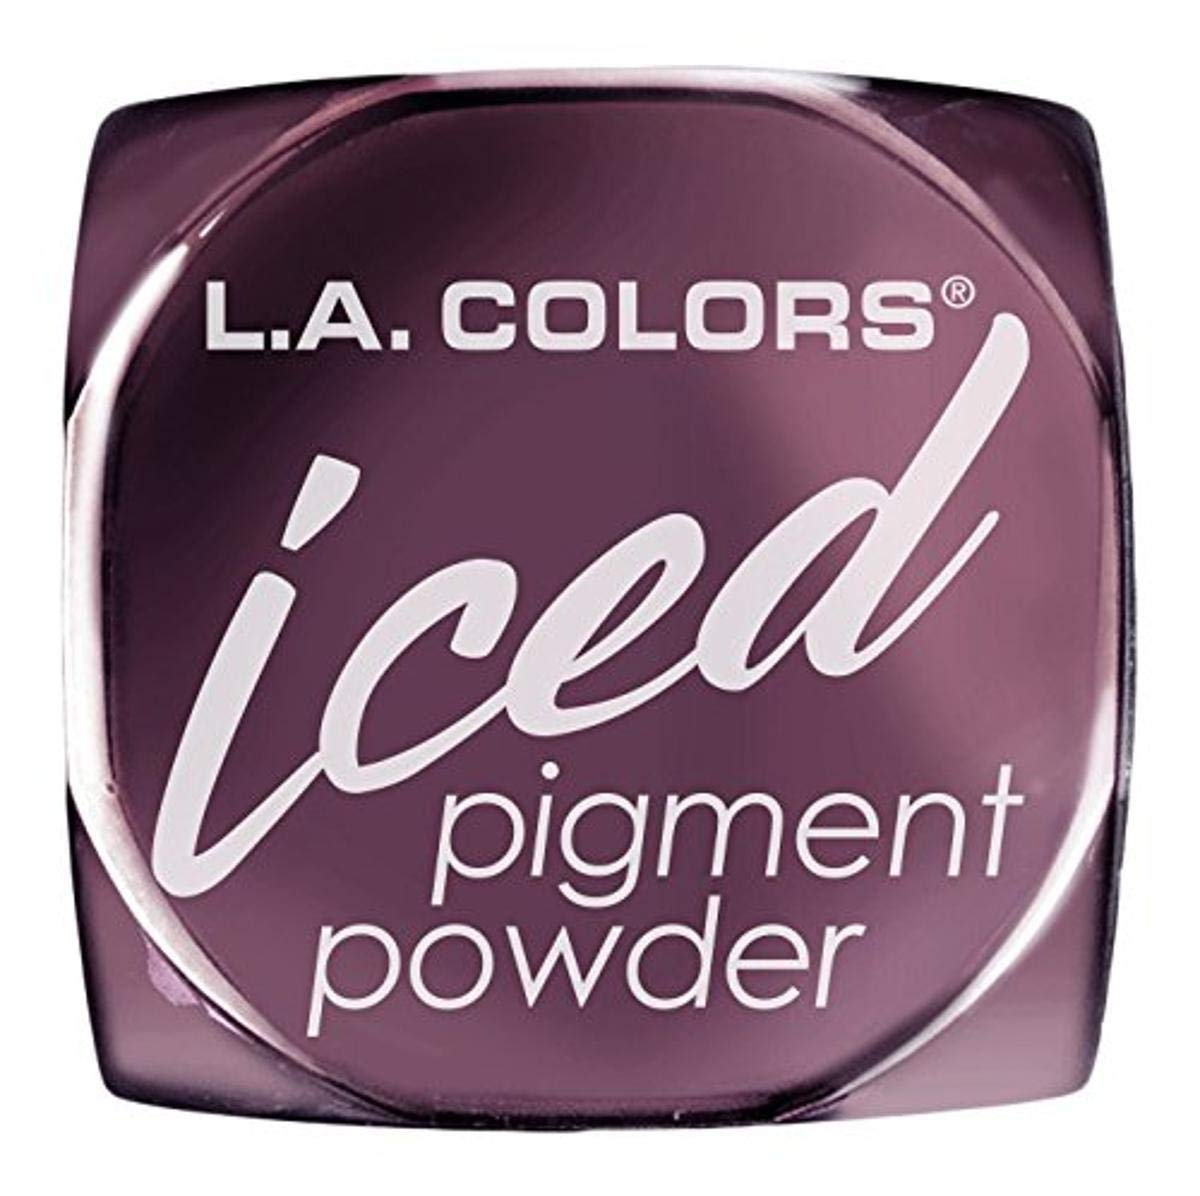 L.A. Colors Iced Pigment Powder, Glisten, 0.11 Ounce (Pack of 3)